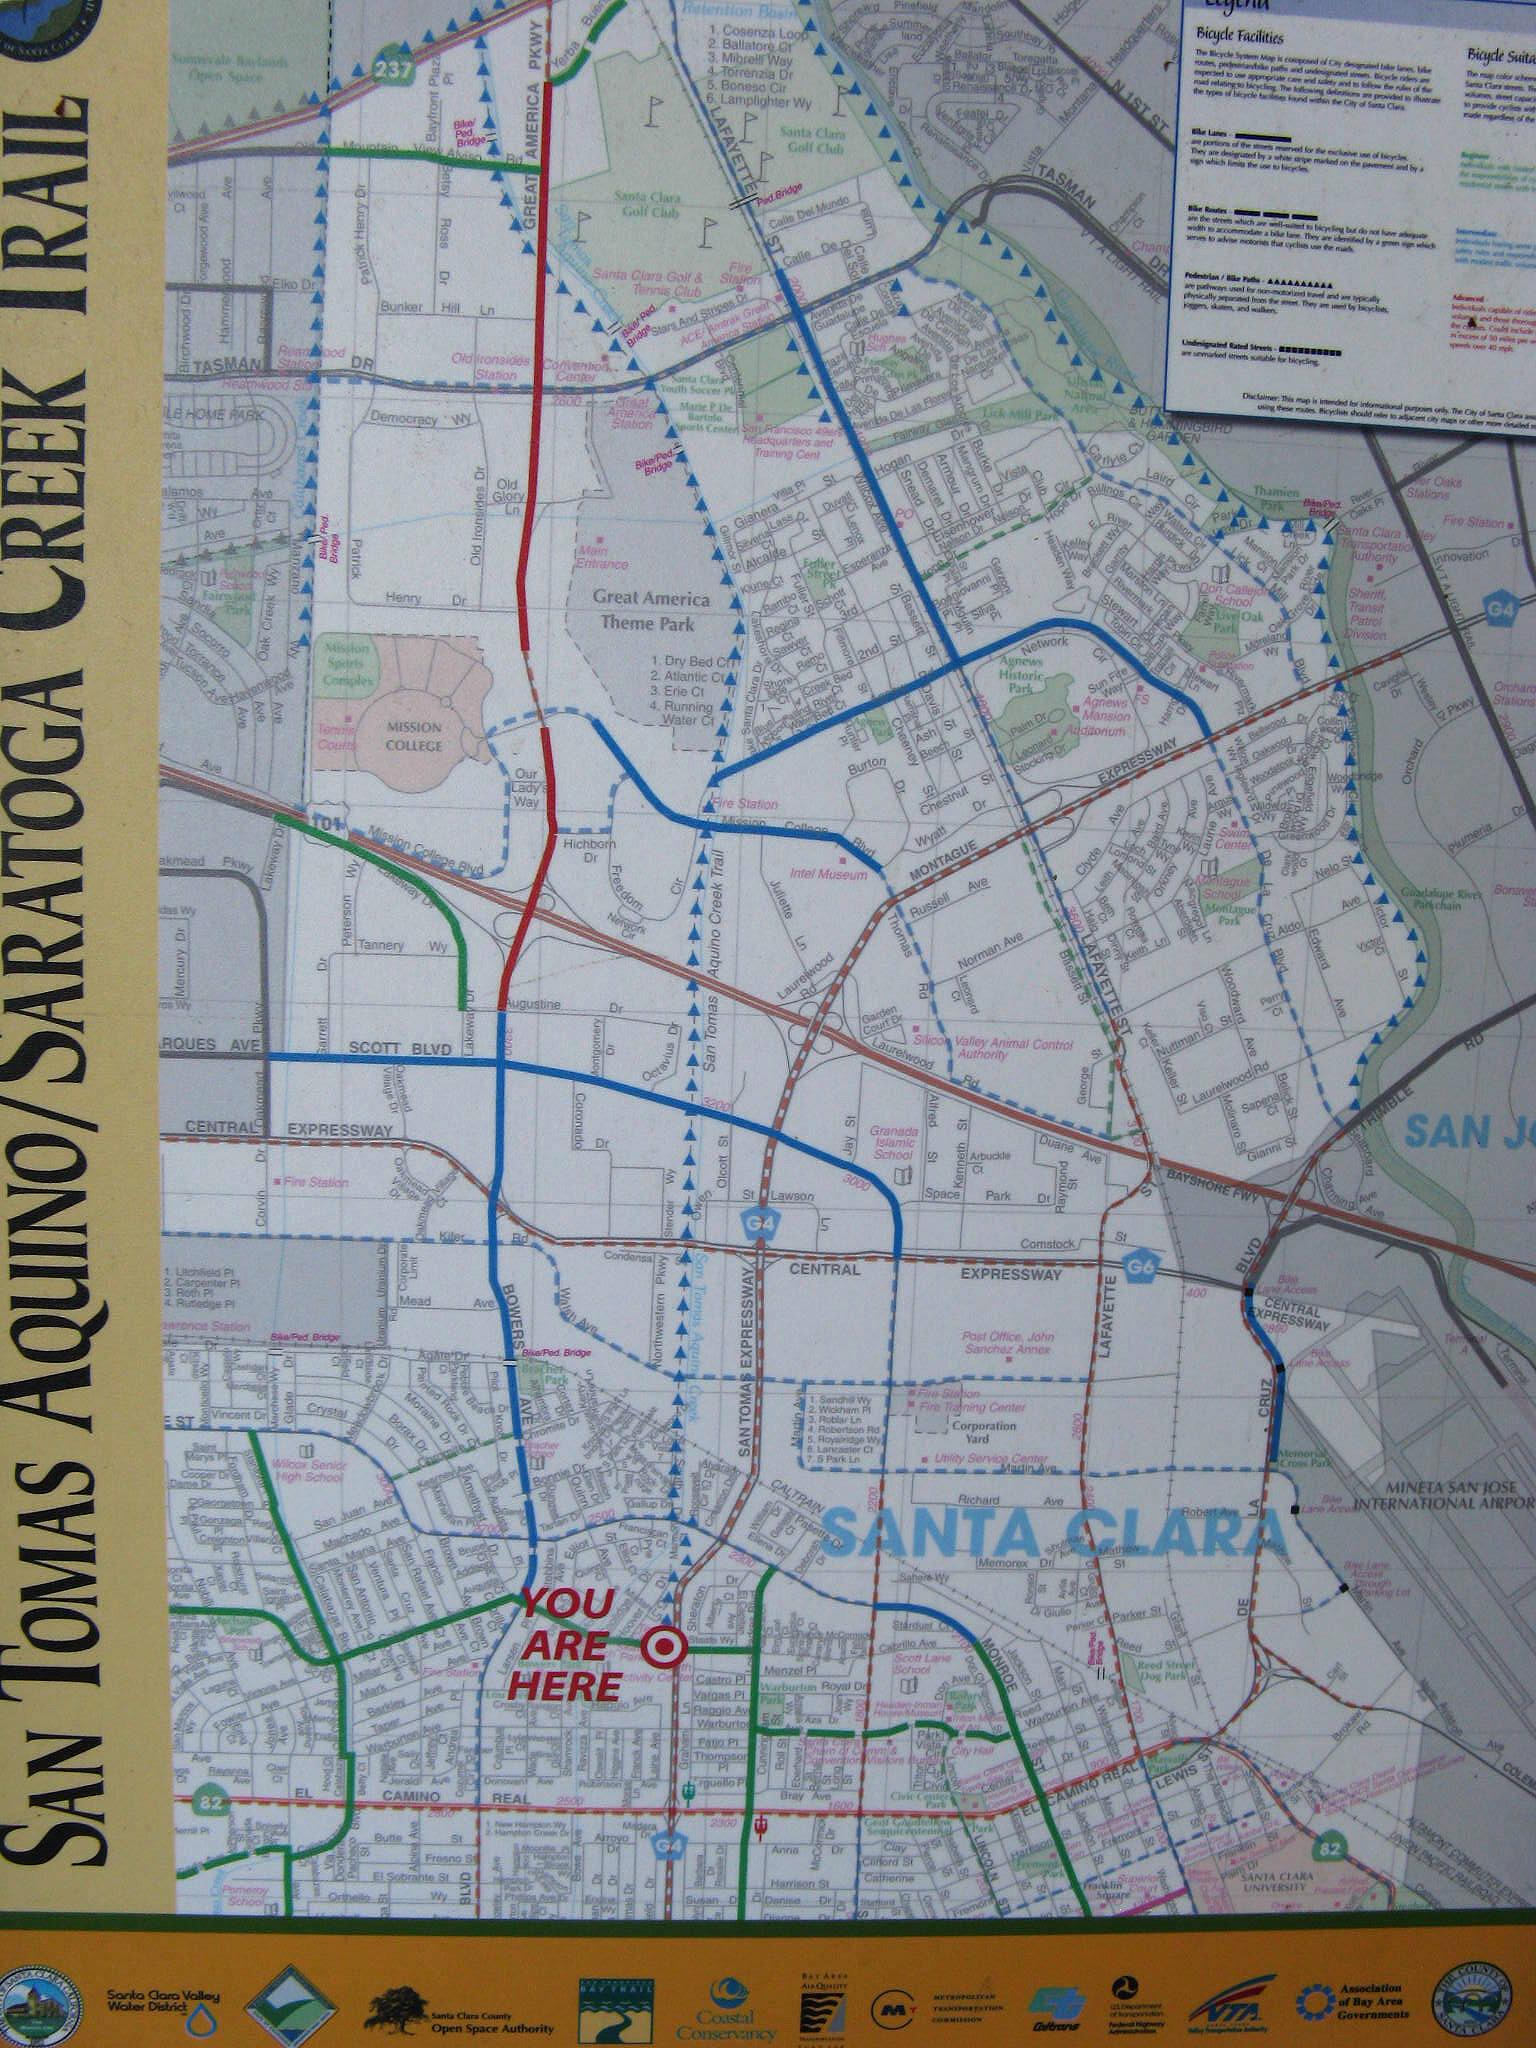 The San Tomas AquinoSaratoga Creek Trail Santa Clara California - San jose bike trails map